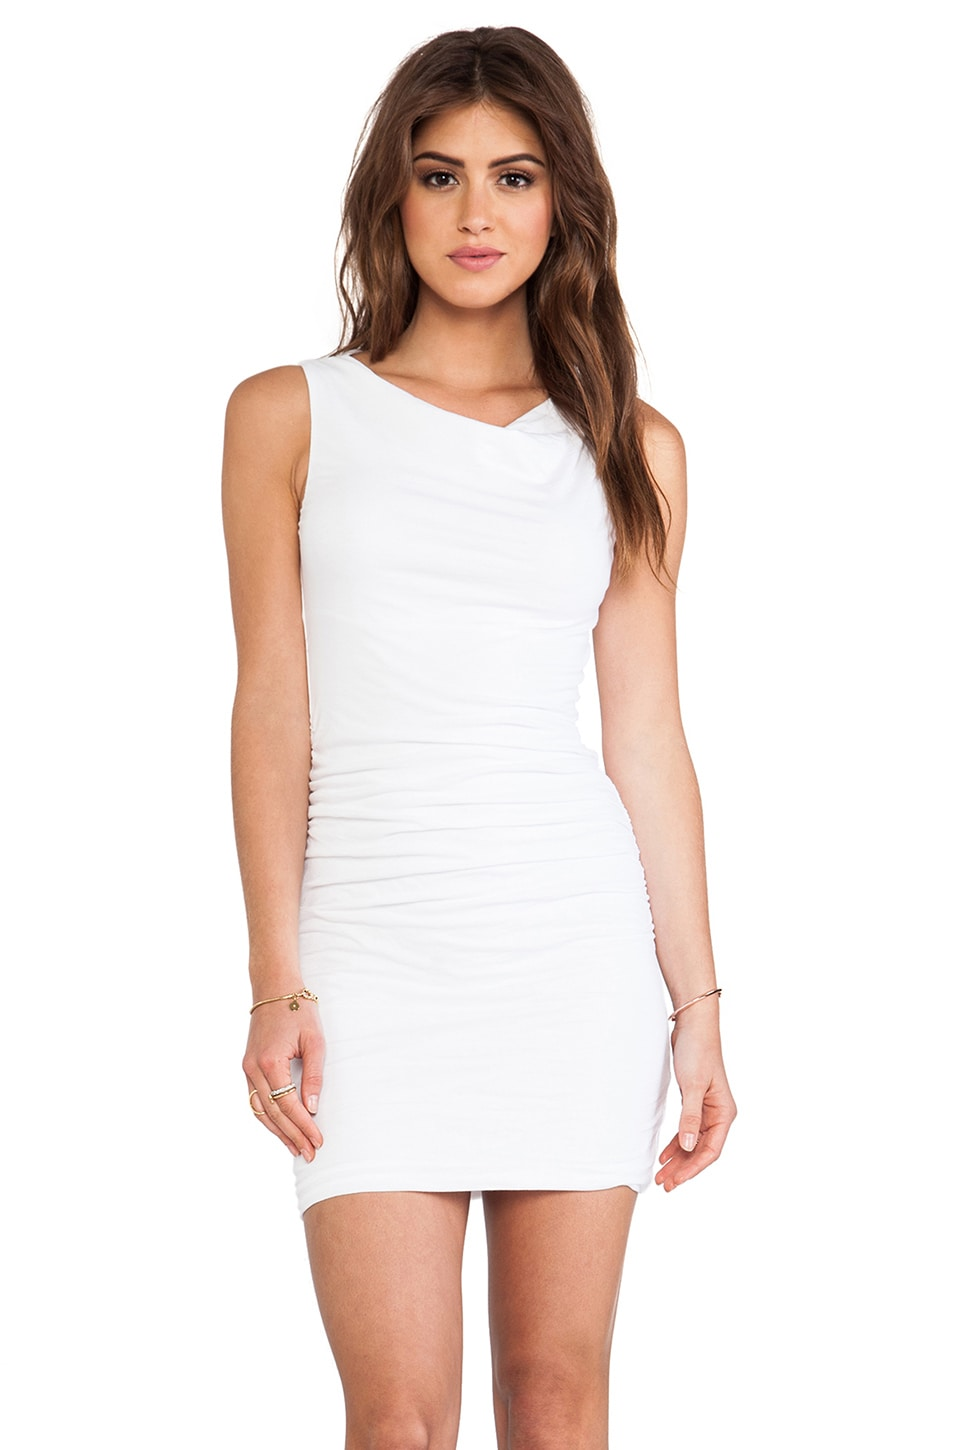 Velvet by Graham & Spencer Gauzy Ethel Whisper Novelty Dress in White